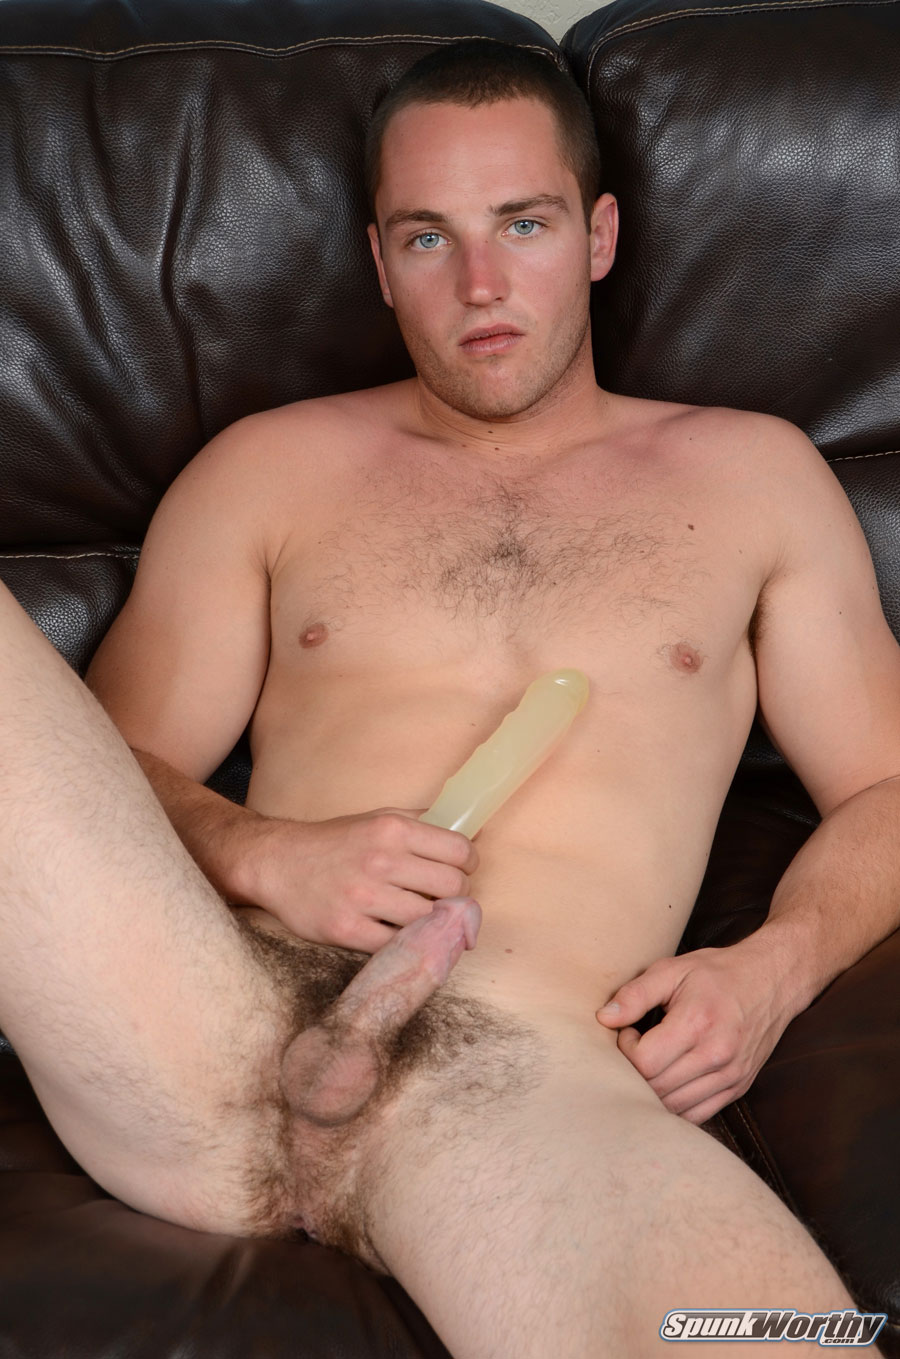 SpunkWorthy-Dean-Straight-Marine-Uses-A-Dildo-On-Hairy-Ass-Amateur-Gay-Porn-03 Ripped Marine Fucks His Straight Hairy Ass With A Dildo